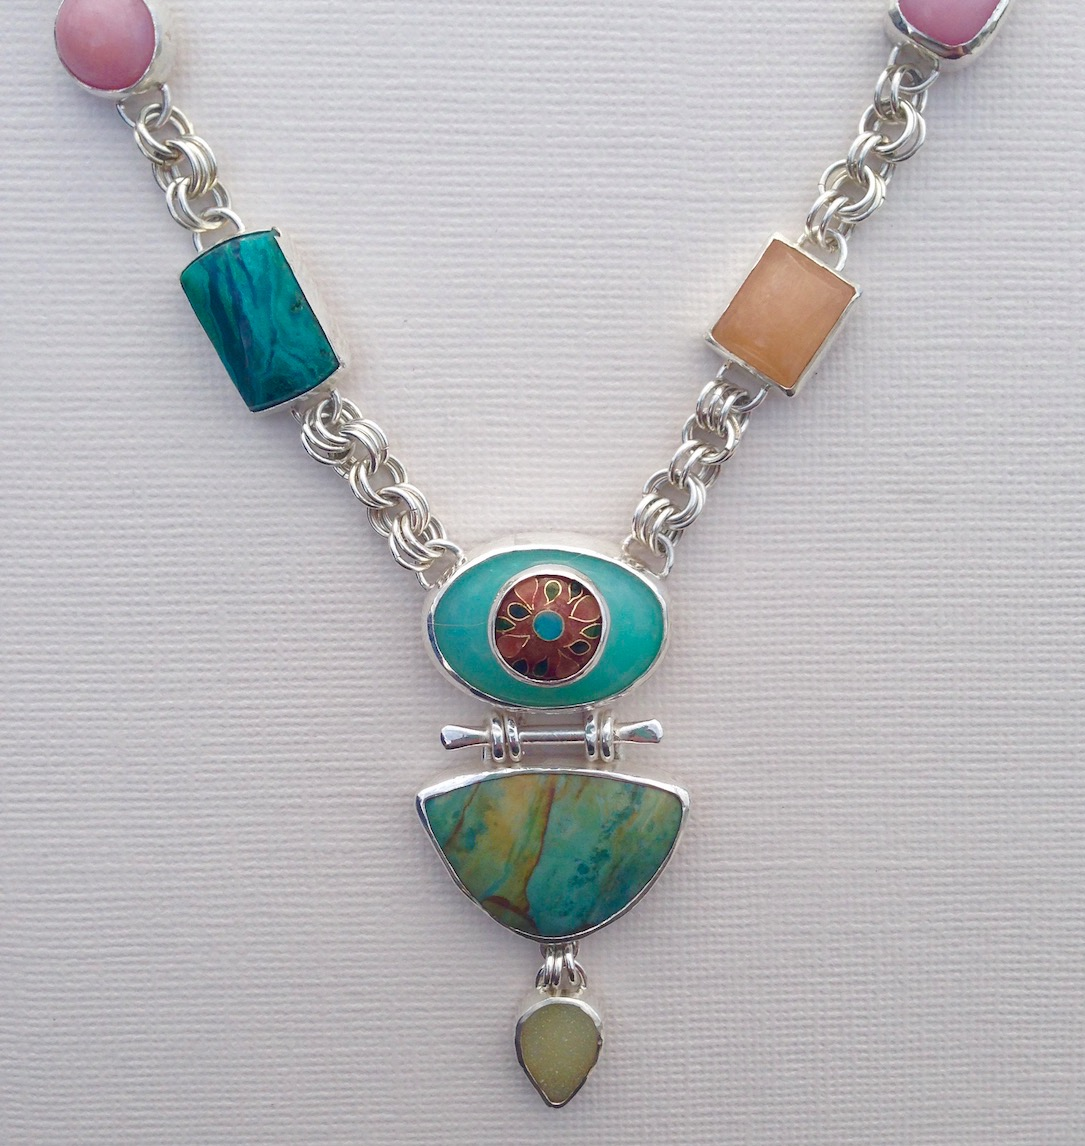 Necklace (sold) Image